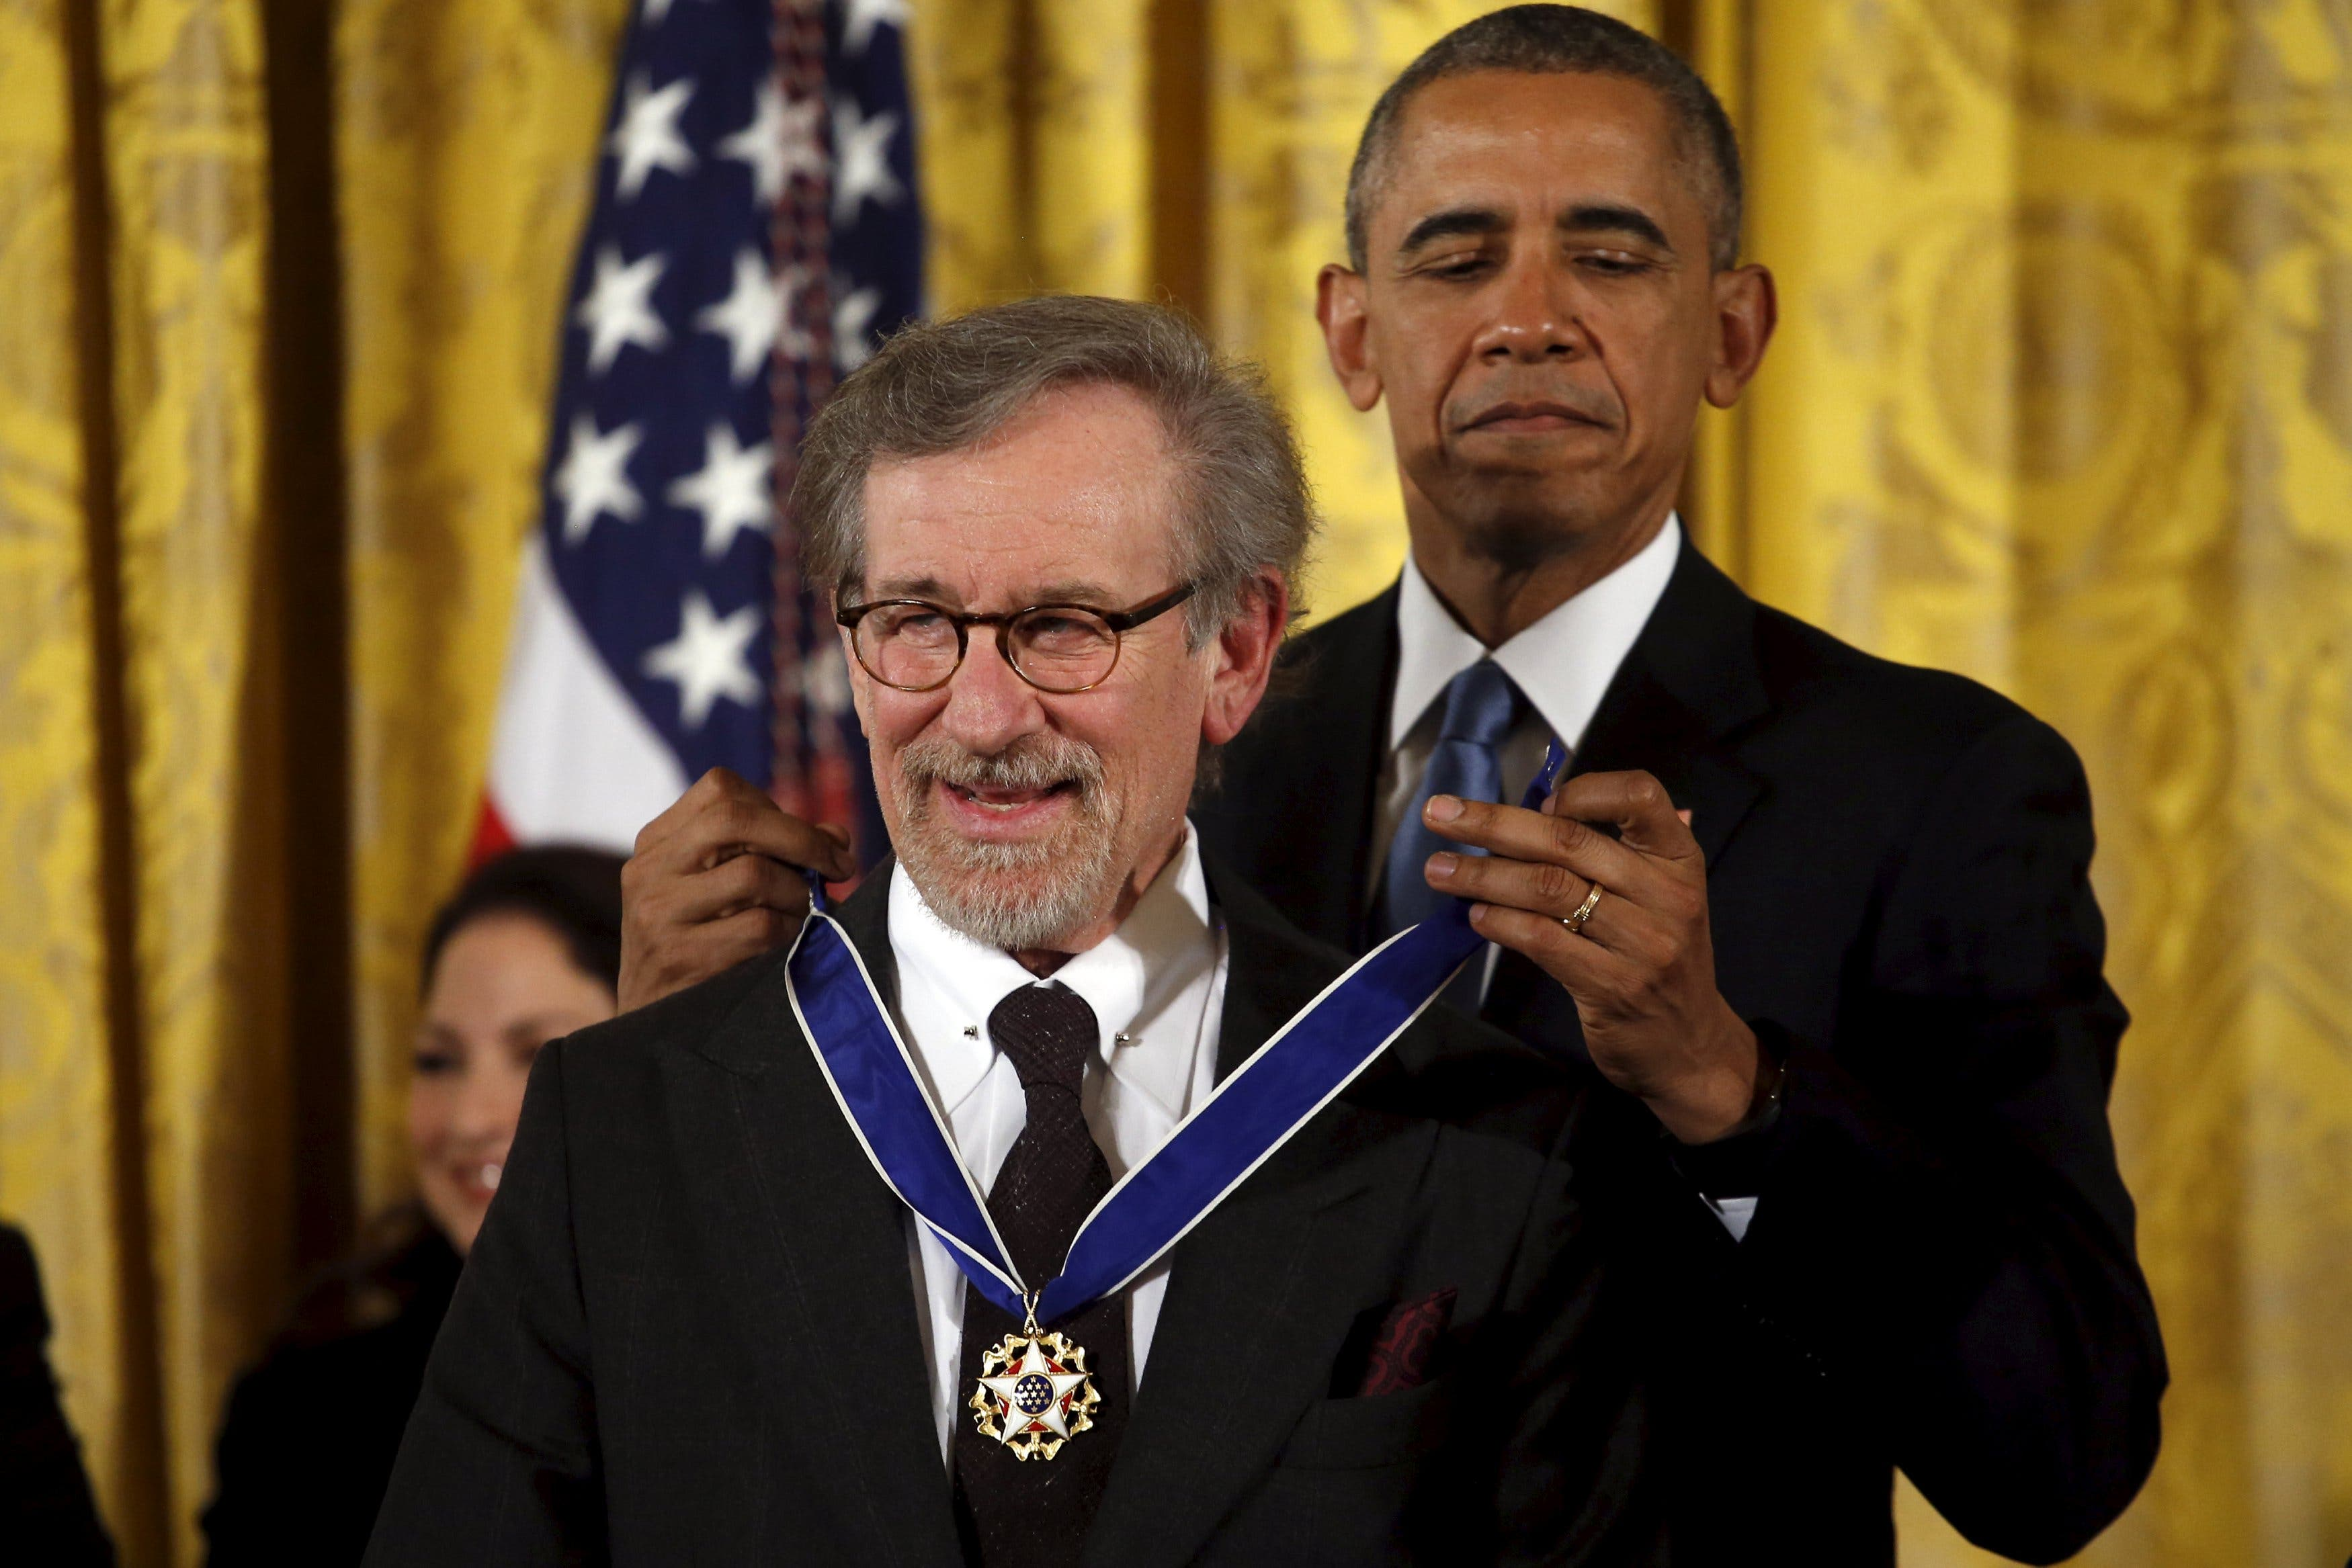 U.S. President Barack Obama presents the Presidential Medal of Freedom to film director Steven Spielberg during an event in the East Room of the White House in Washington. (Reuters)